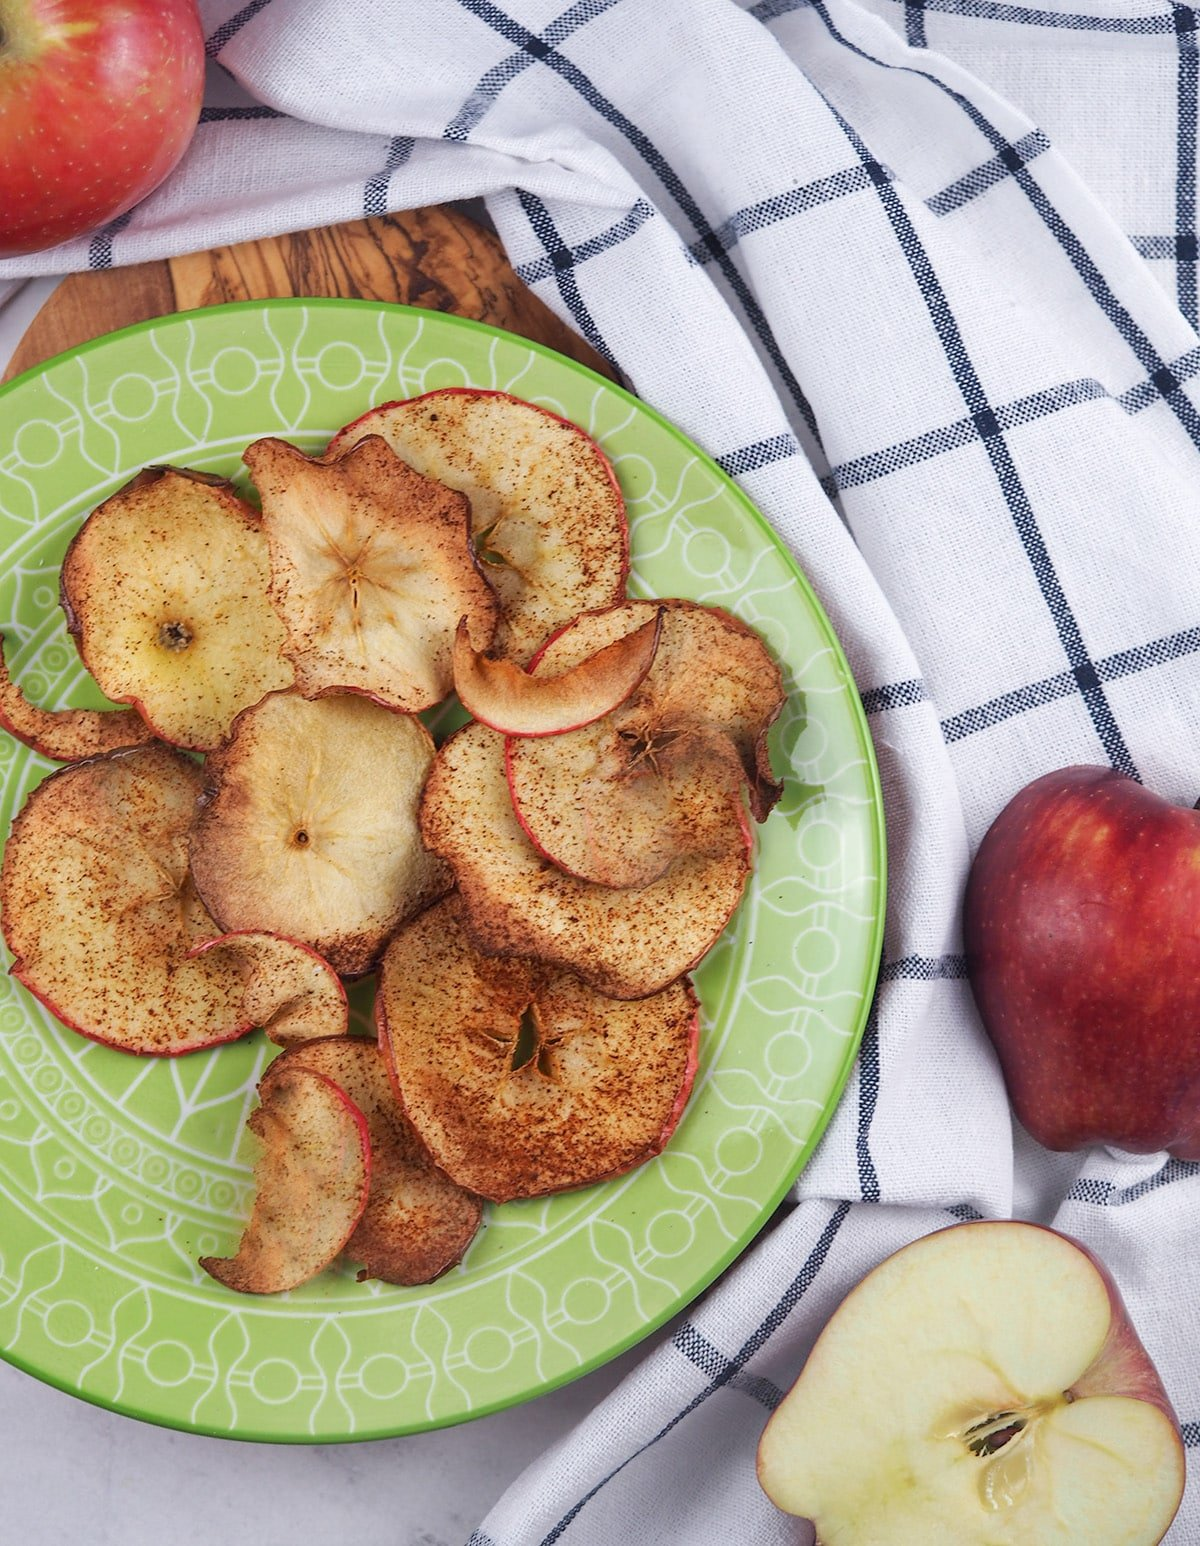 apple chips on green plate next to red apples